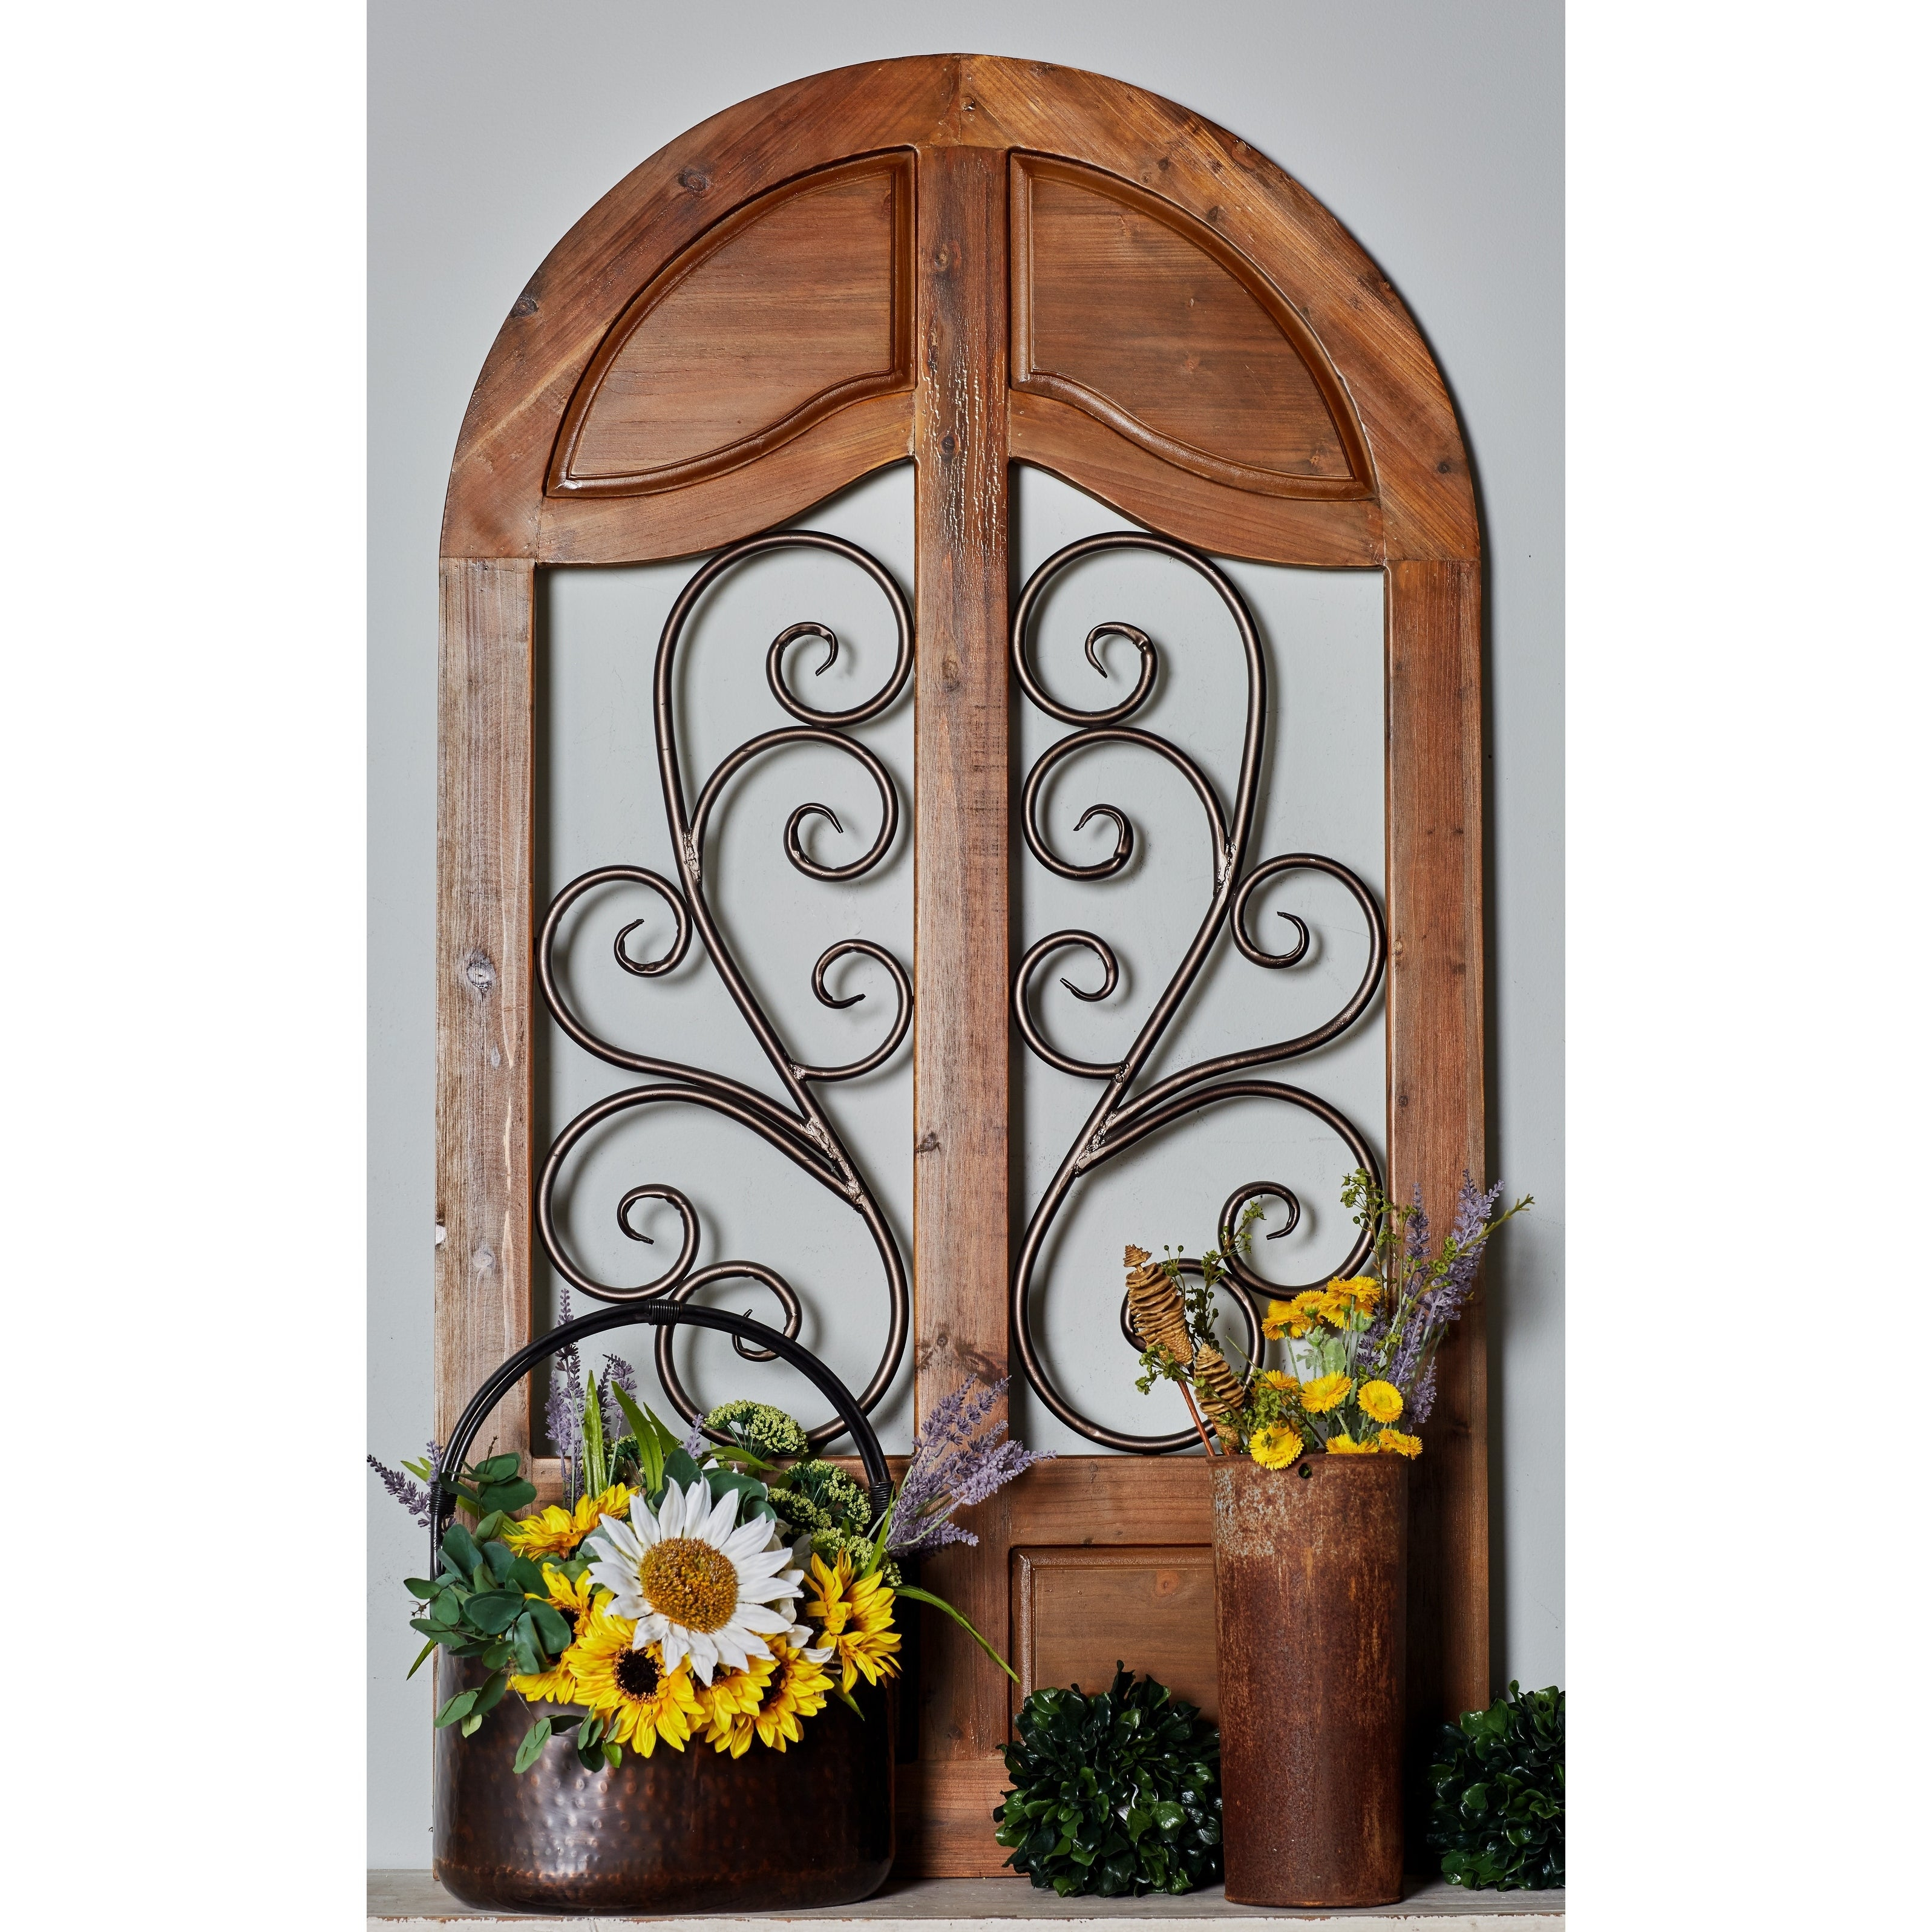 Shop Rustic 58 Inch Wood And Iron Cathedral Window Wall Decor Regarding Most Current Rings Wall Decor By Wrought Studio (View 14 of 20)